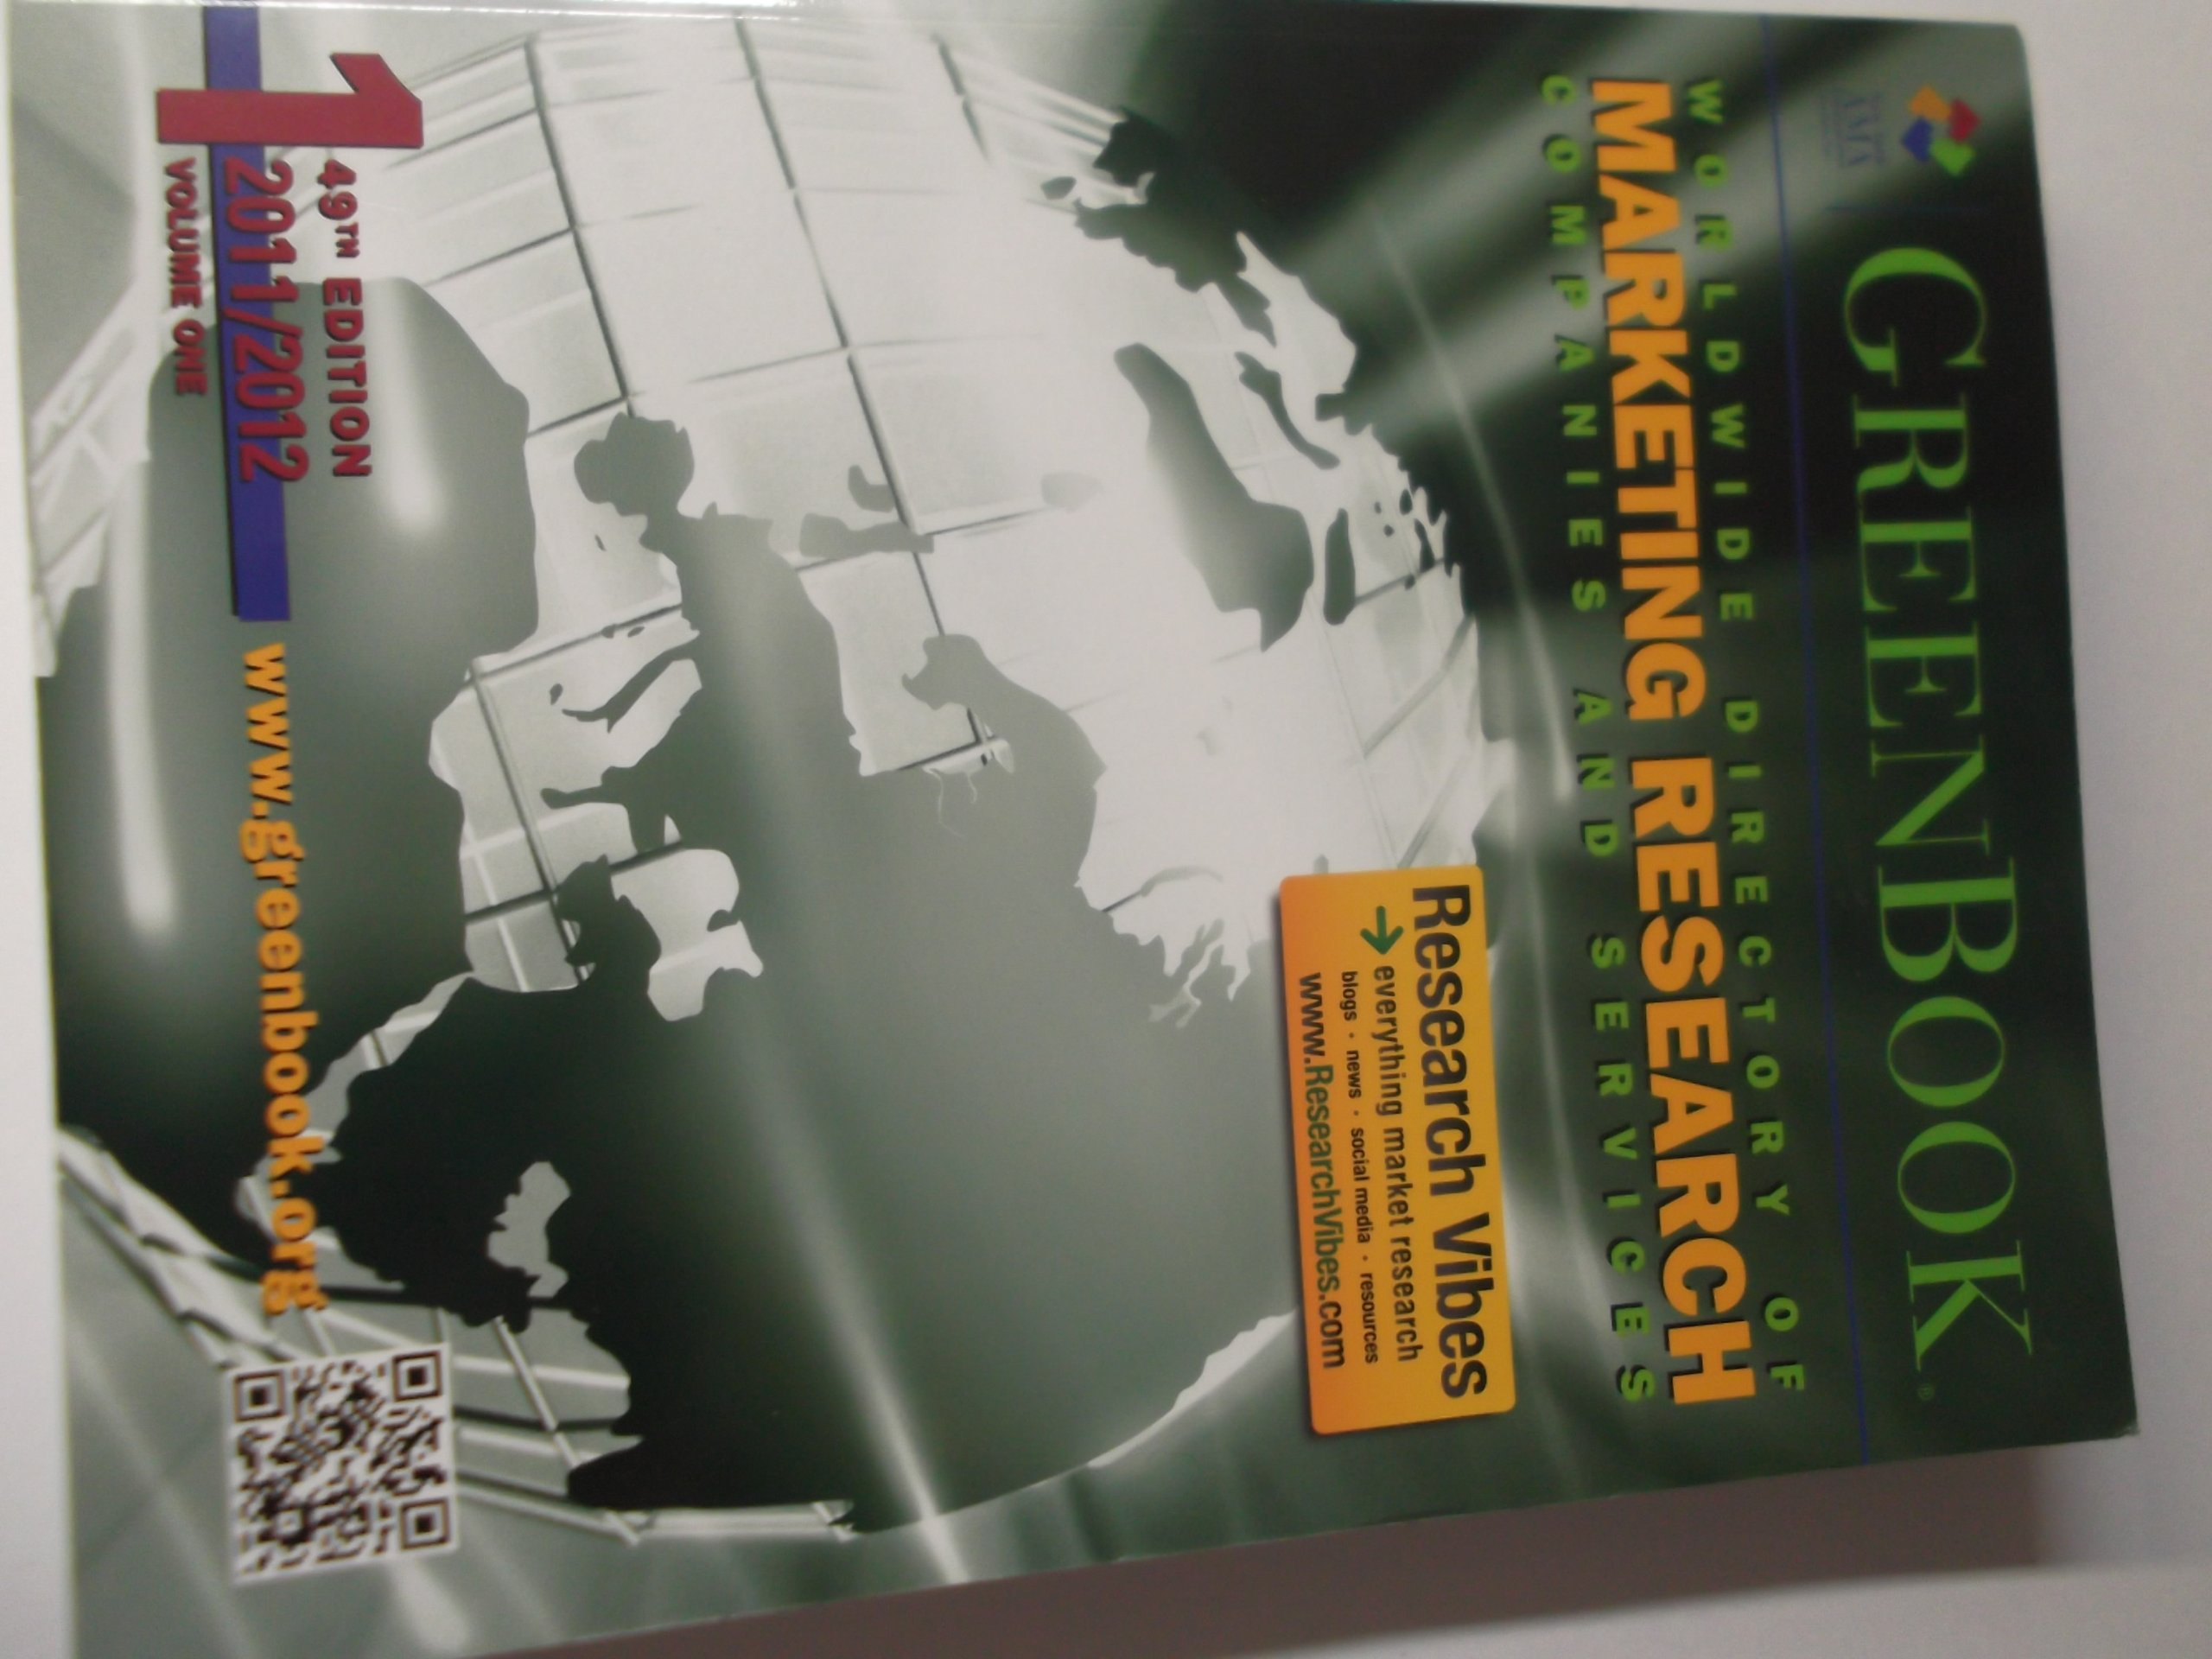 Read Online greenbook worlwide directory of marketing research companies and services volume 1 49th edition 2011/2012 PDF